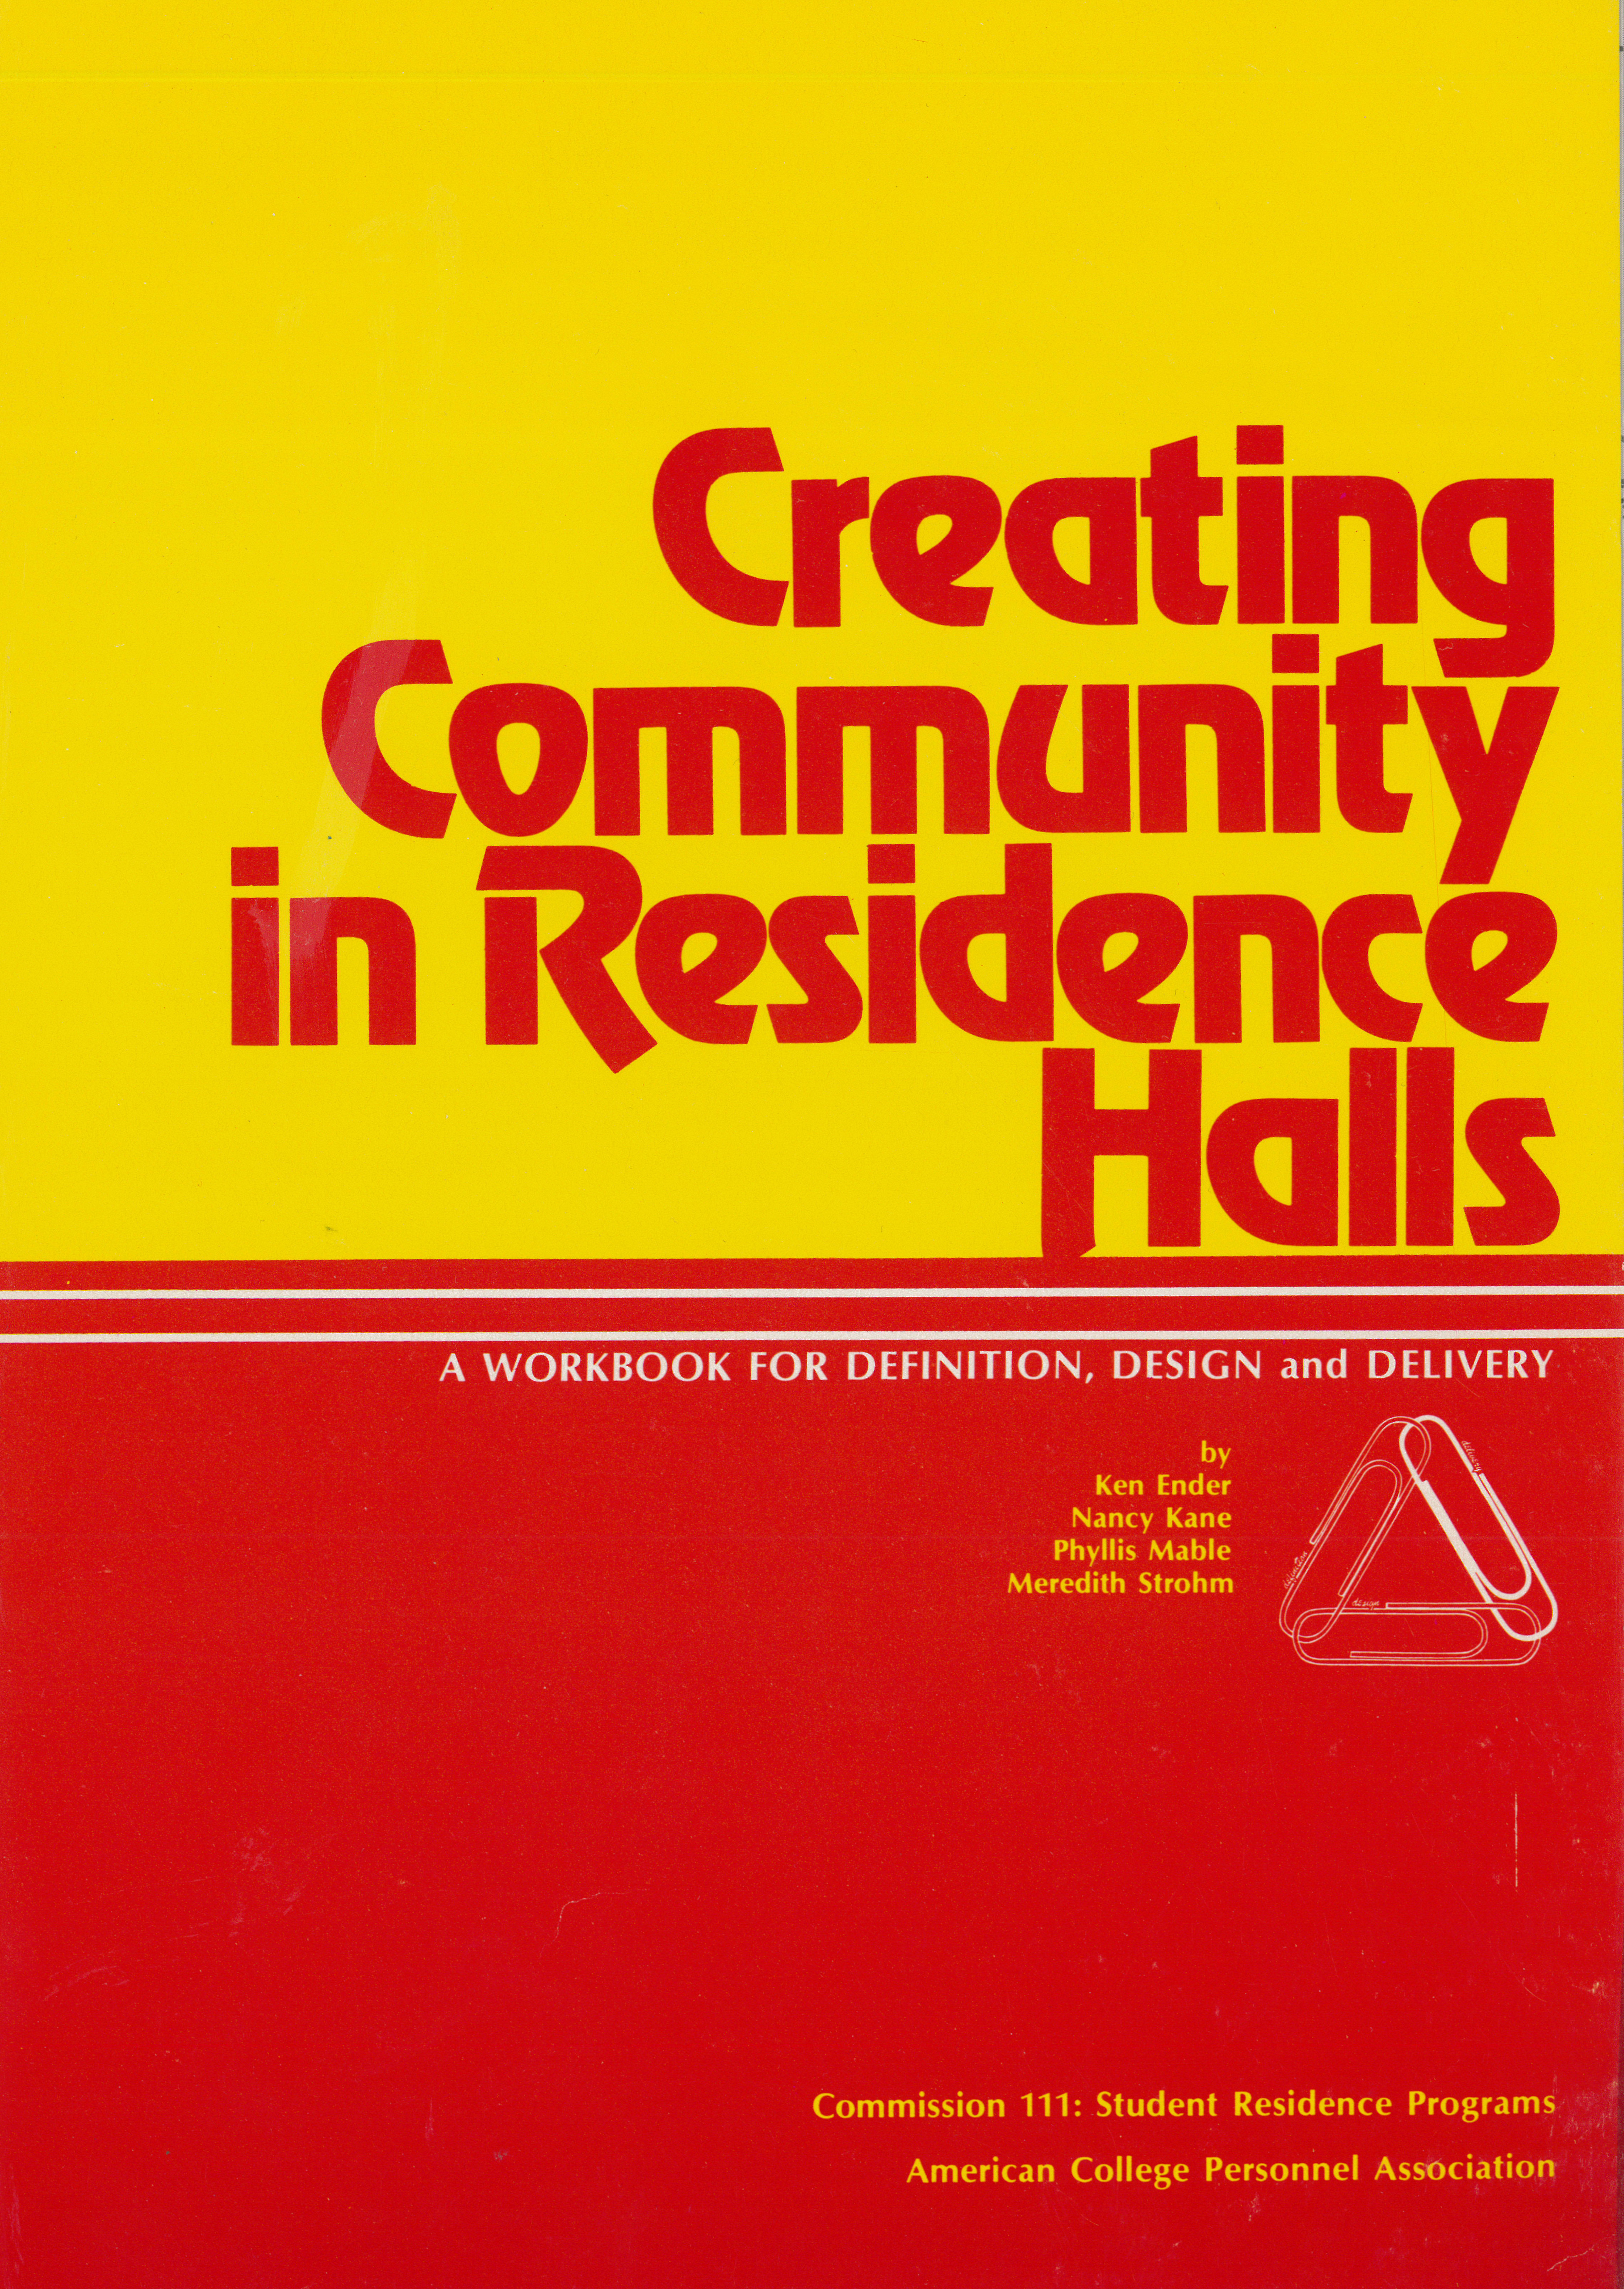 Creating Community in Residence Halls: A Workbook for Definition, Design and Delivery